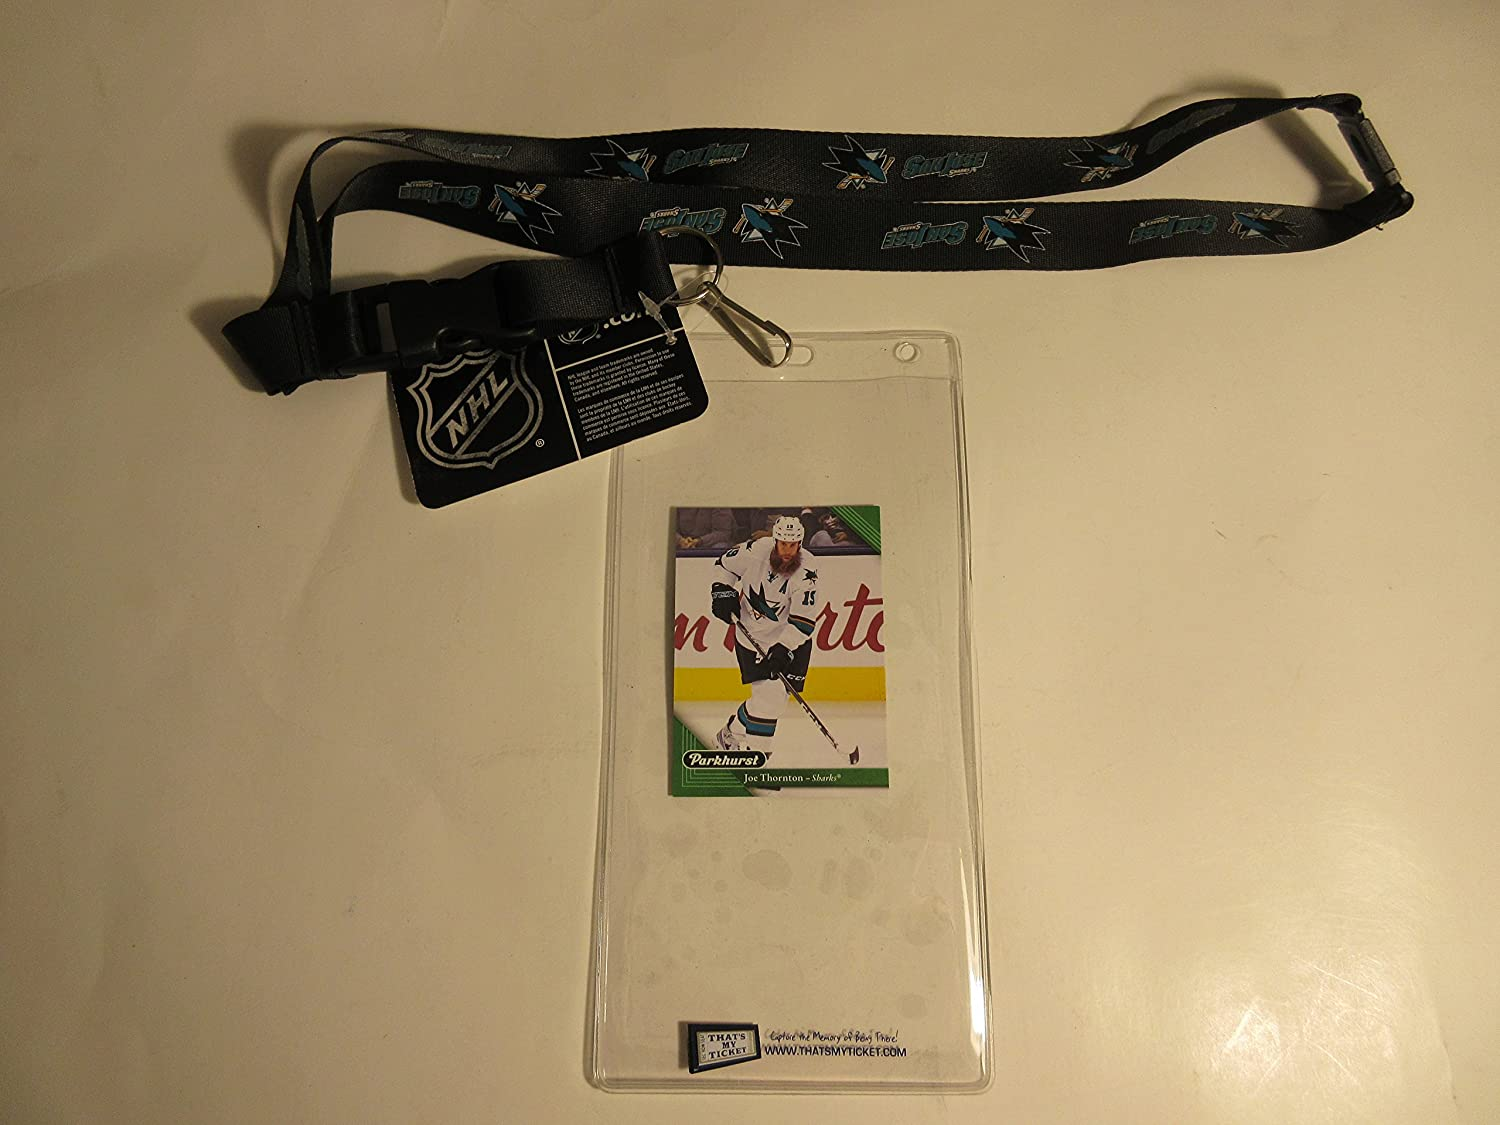 SAN JOSE SHARKS OFFICIAL BLACK LANYARD WITH TICKET HOLDER PLUS COLLECTIBLE PLAYER CARD